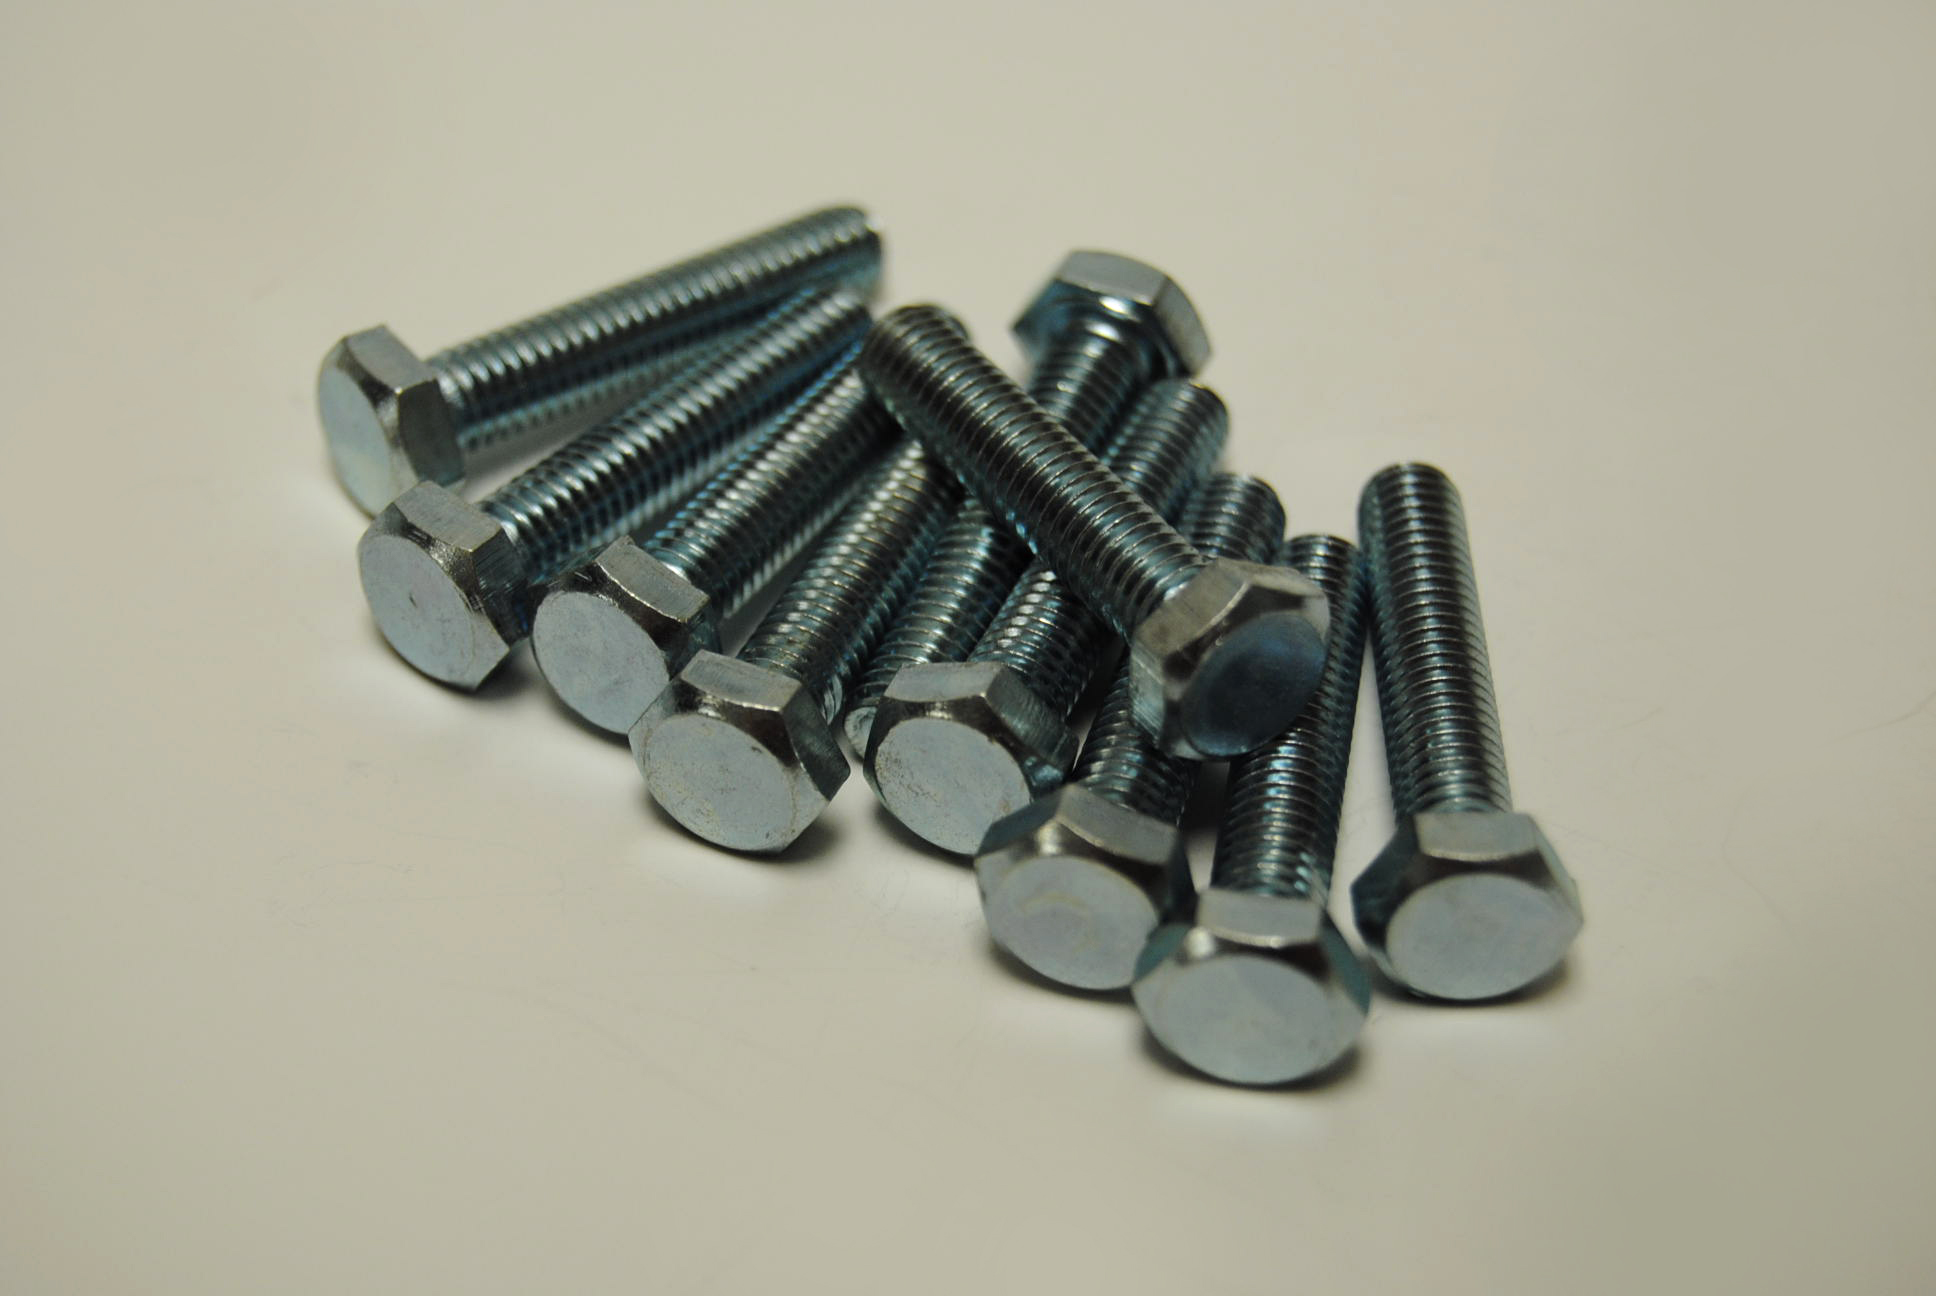 6mm x 30mm Hex Head Bolts - ISO